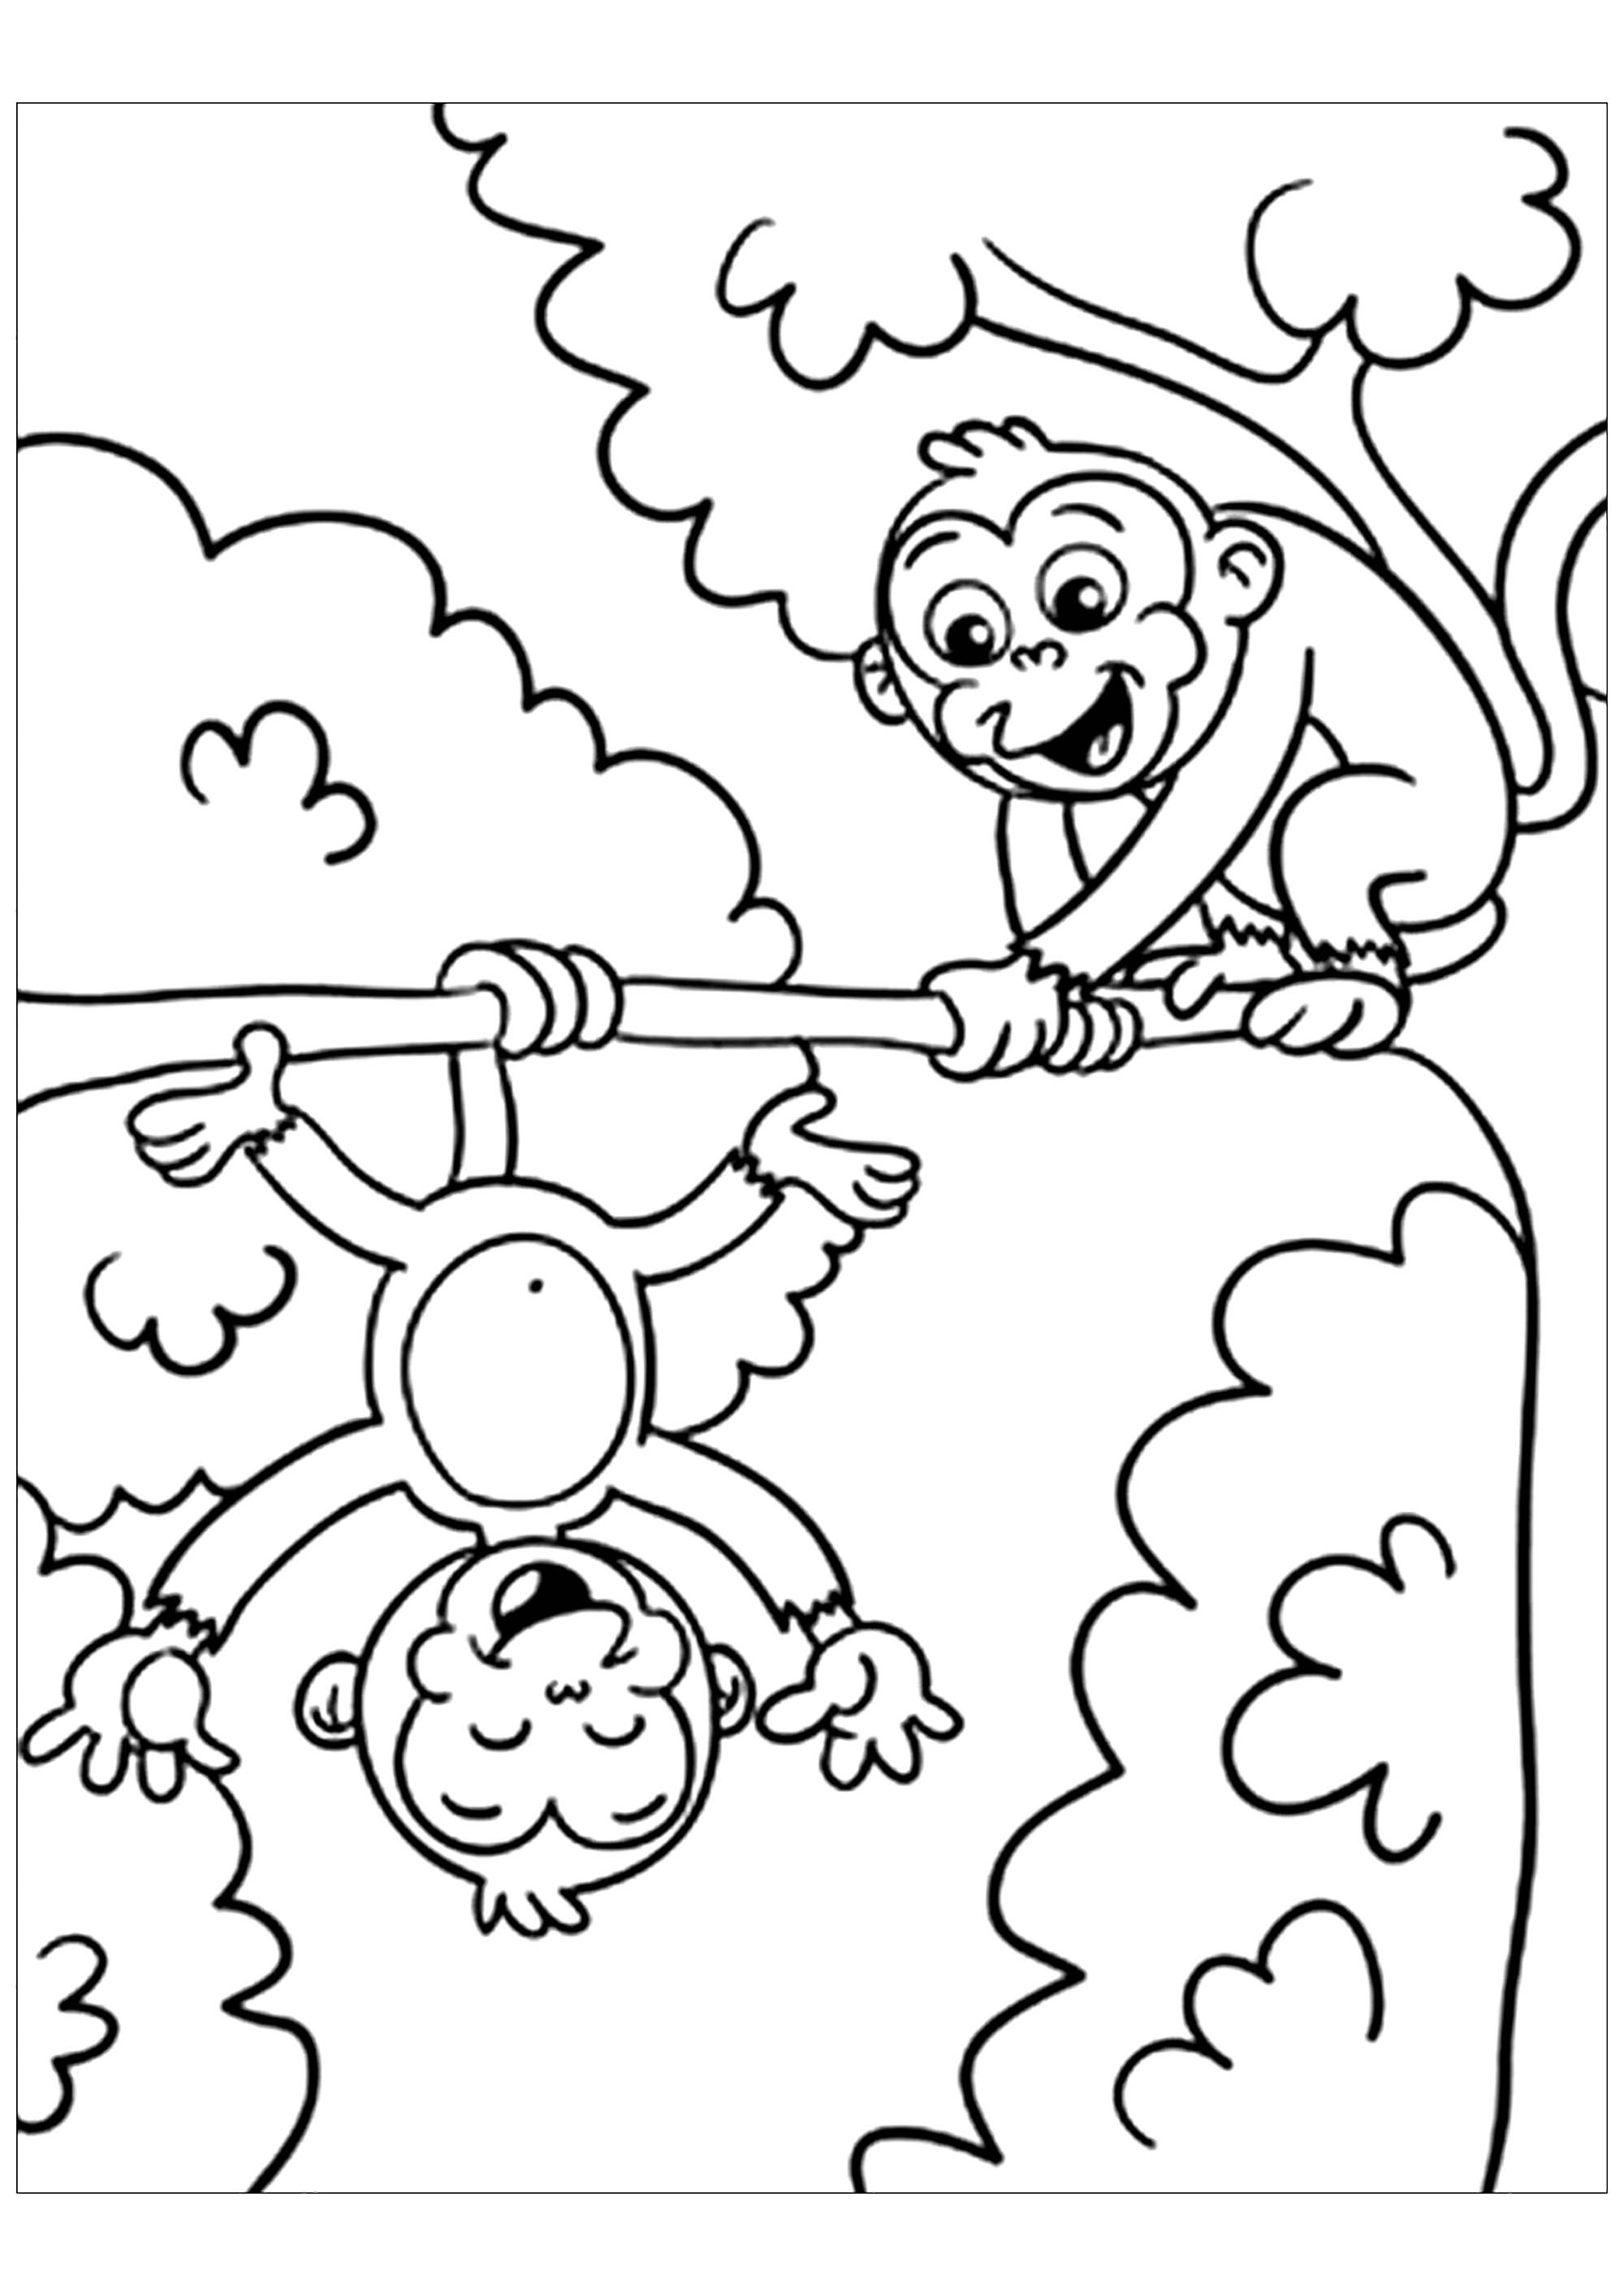 monkey pictures to color free printable monkey coloring pages for kids monkey color to pictures